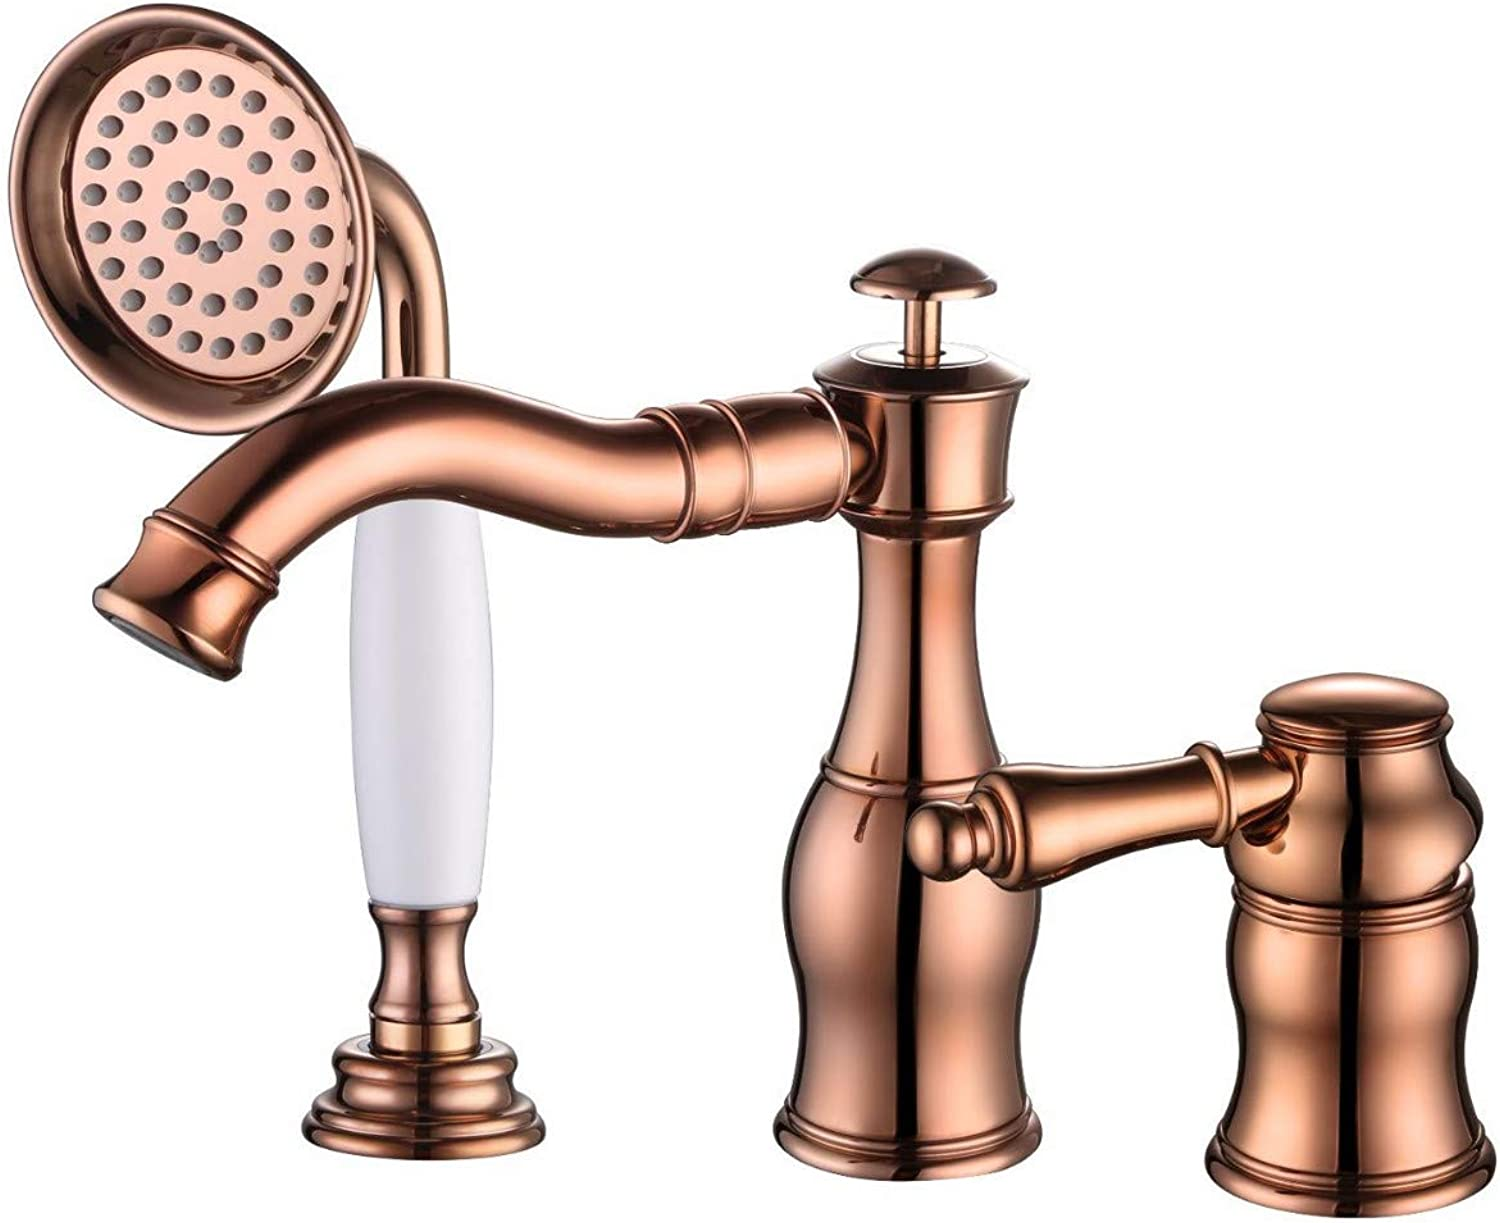 redOOY Taps Faucet Basin Faucet Antique Basin With Pull-Out Small Shower All Copper Hot And Cold Water Faucet C